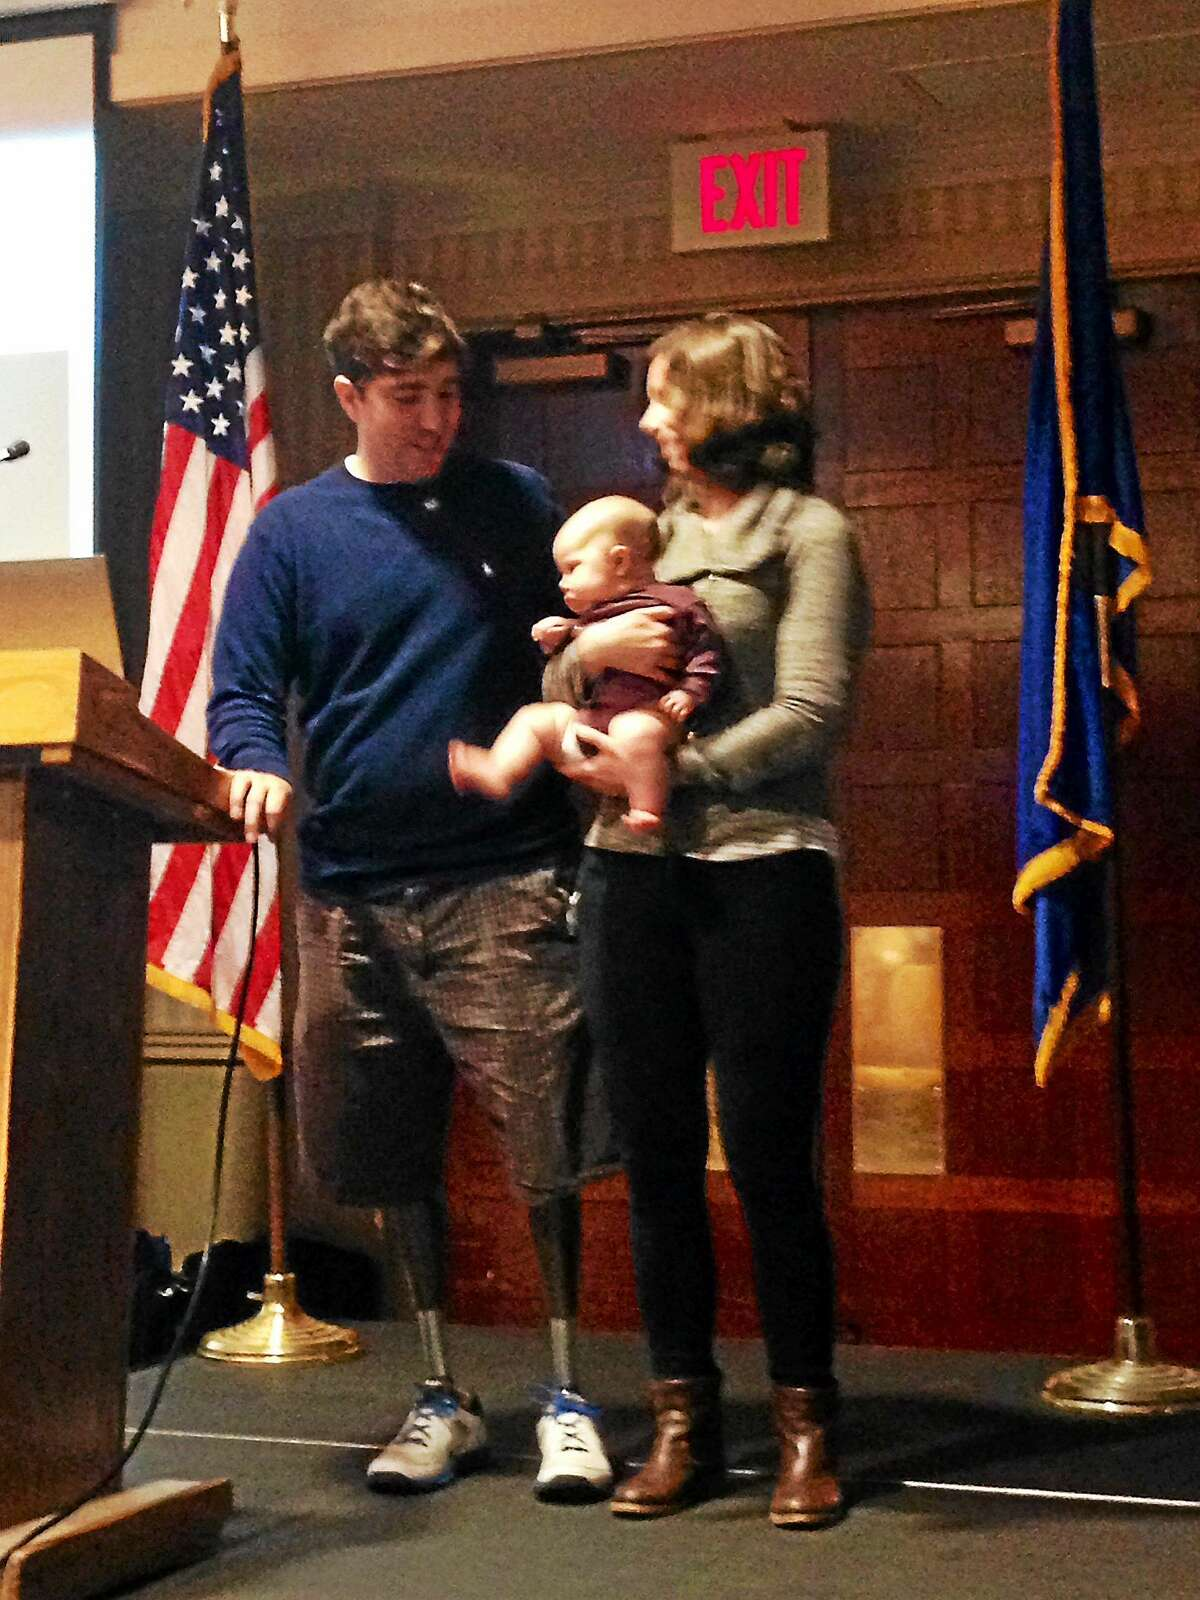 Boston Marathon bombing survivor Jeff Bauman speaks at the Connecticut Citizens Corps Council's 7th Annual Conference Thursday. The 28-year-old lost both legs in the bombings.